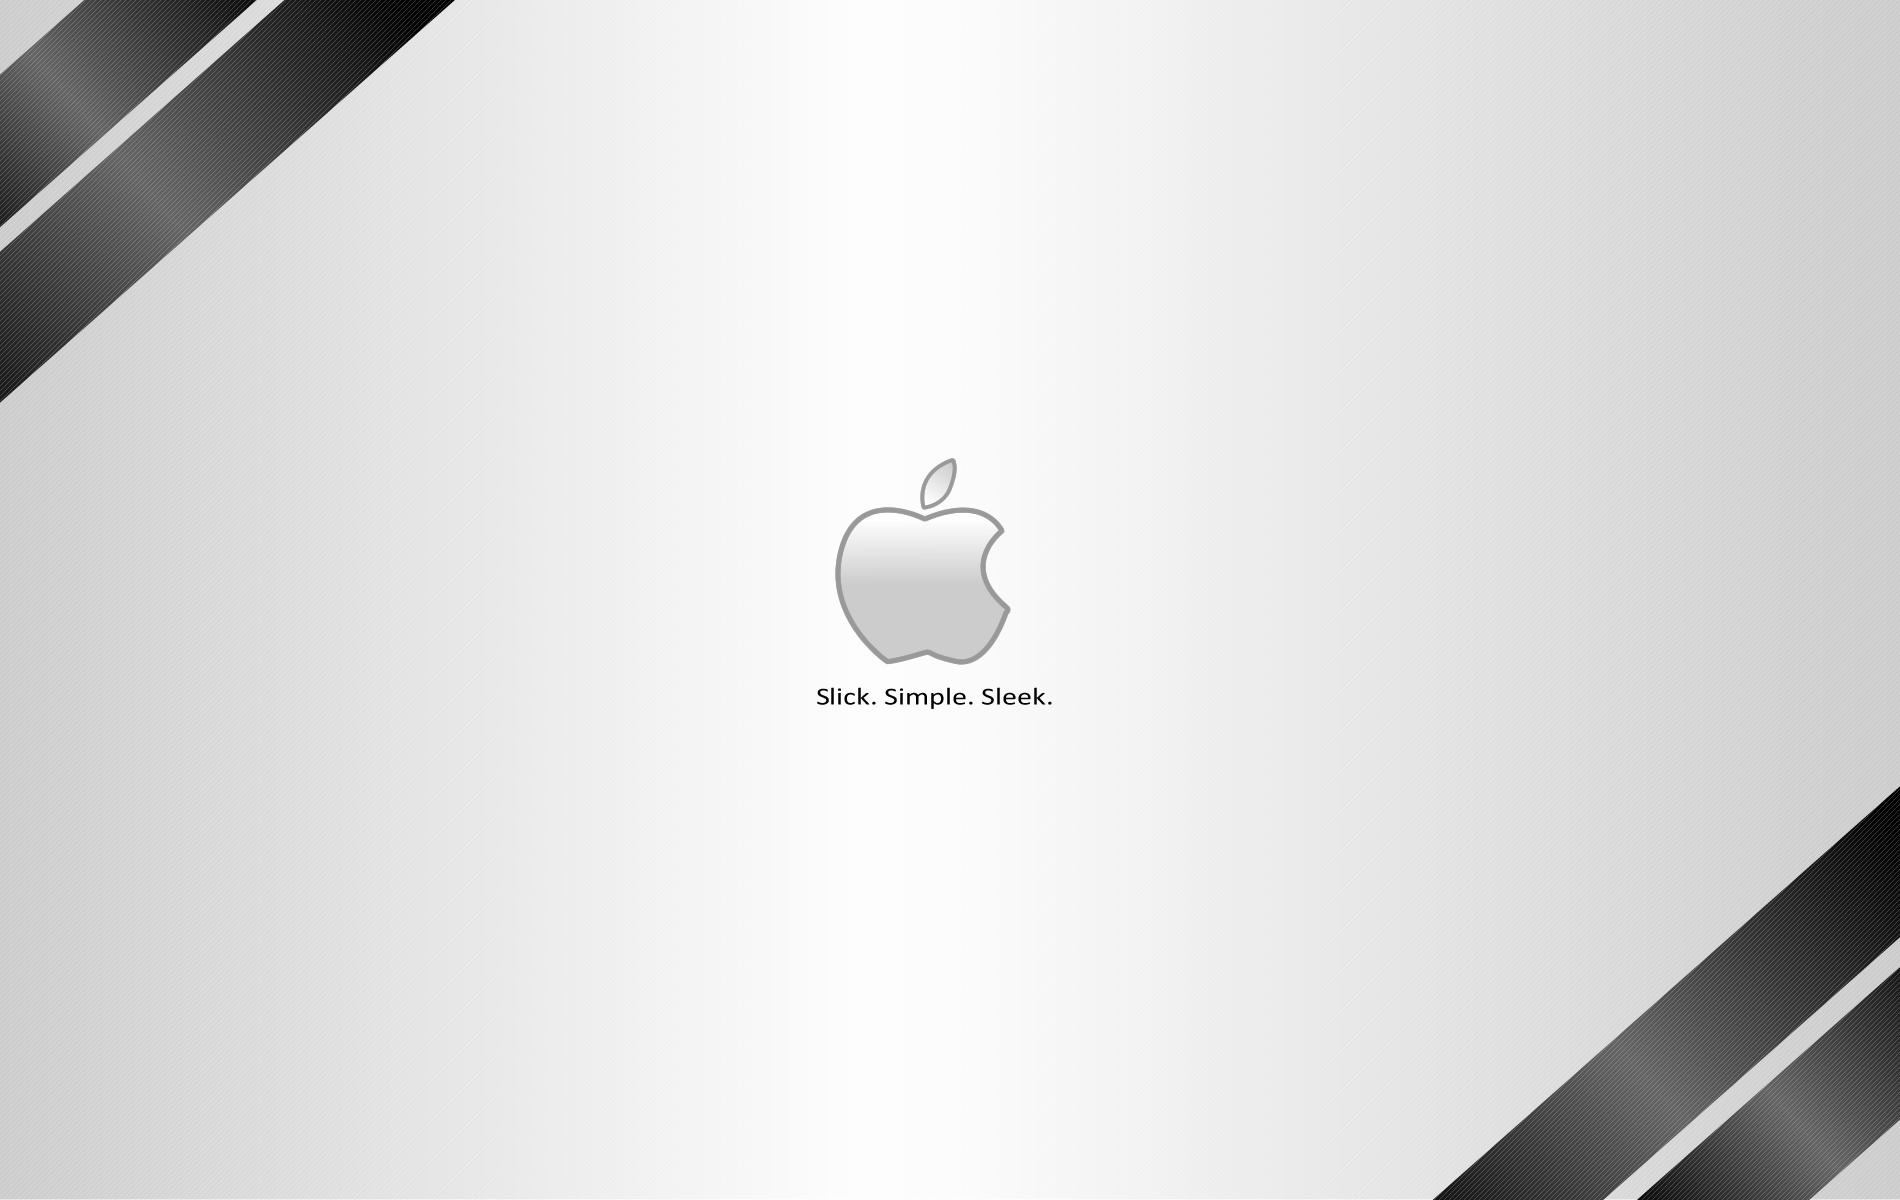 apple icon wallpaper white